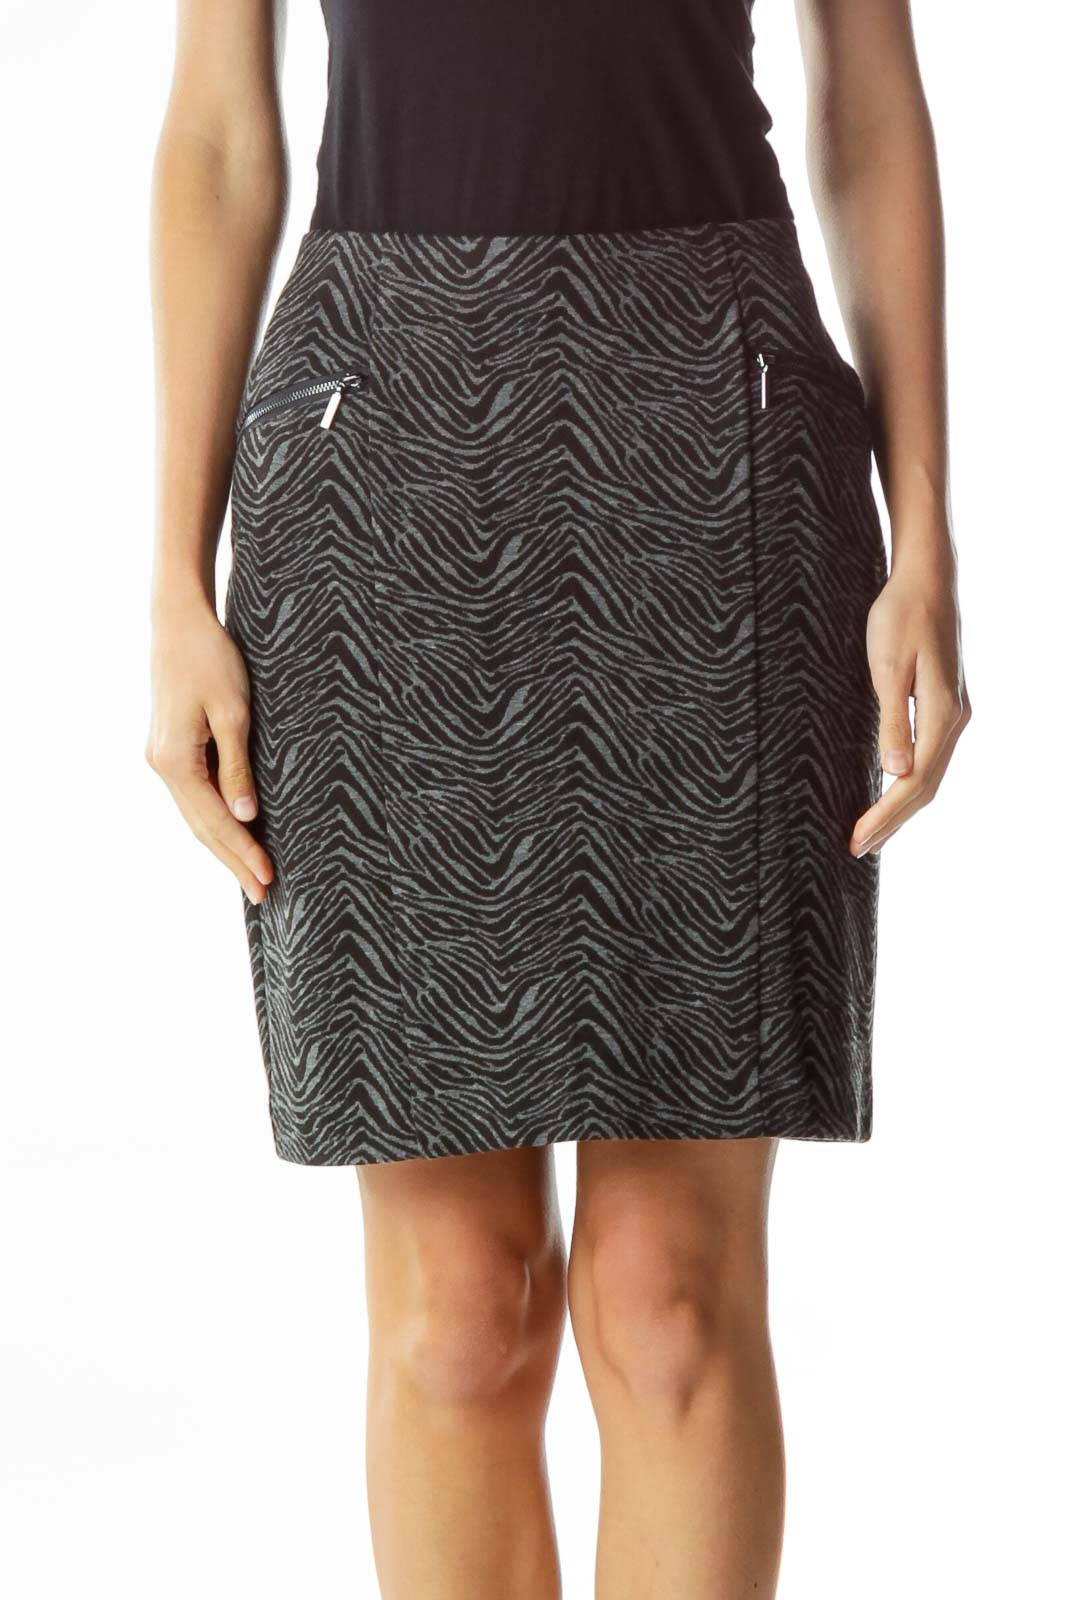 Black Gray Zebra Print Skirt